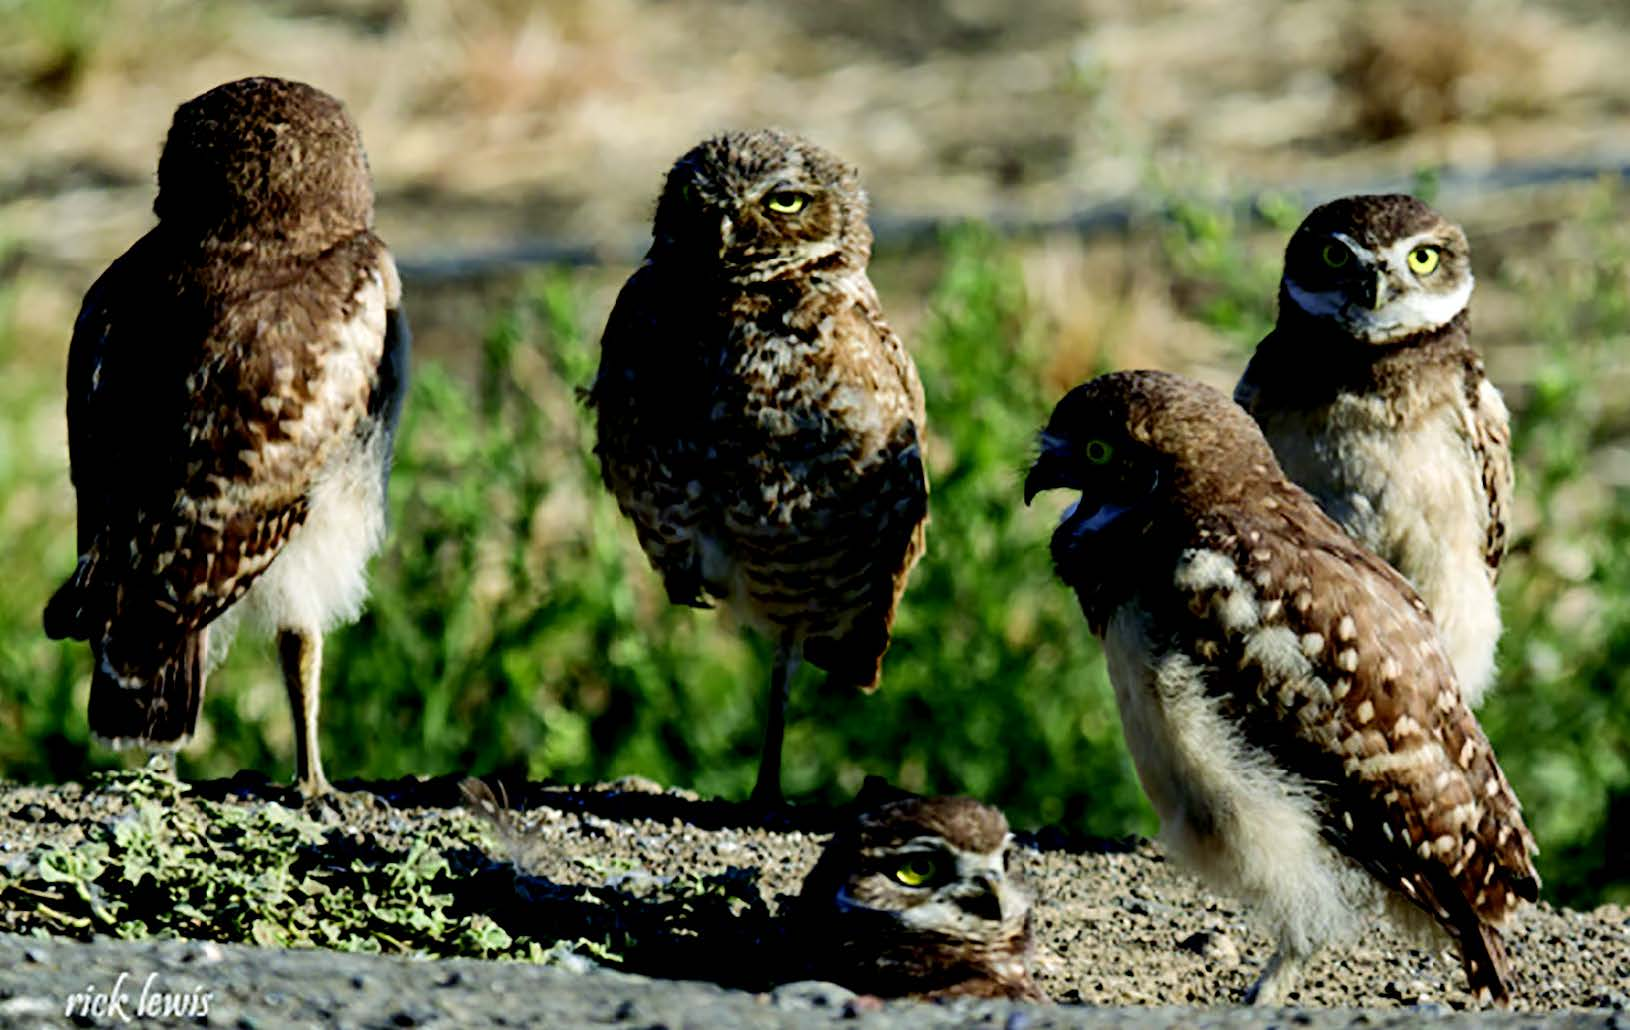 Rick Lewis This burrowing owl family calls the Central Valley home. Families of owls like these once lived in Alameda.